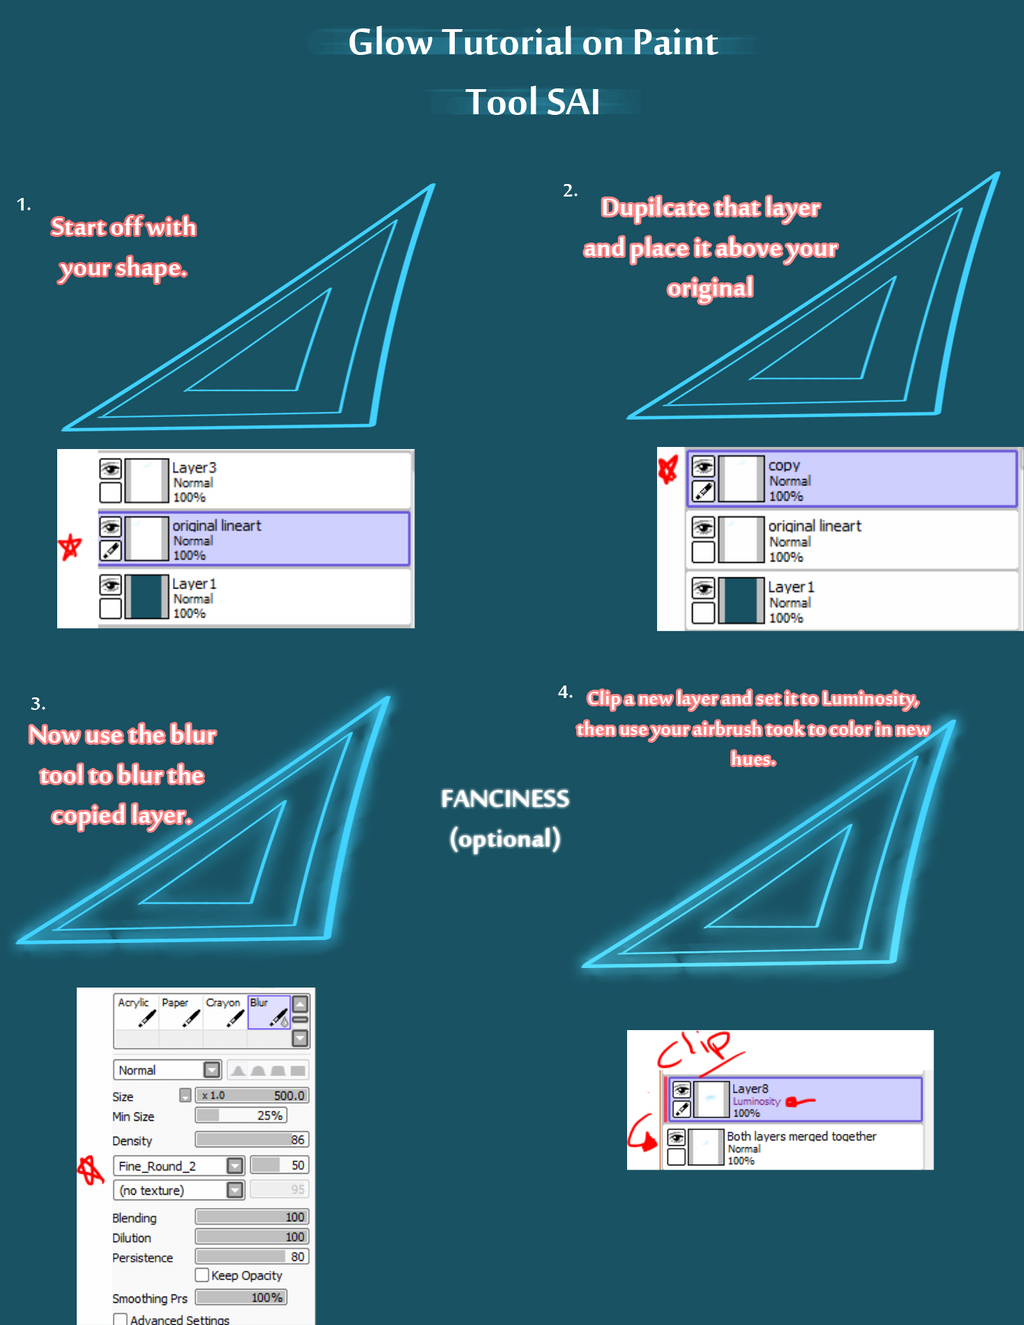 Glow Effect on PAINT TOOL SAI (super easy) by Broyam on DeviantArt